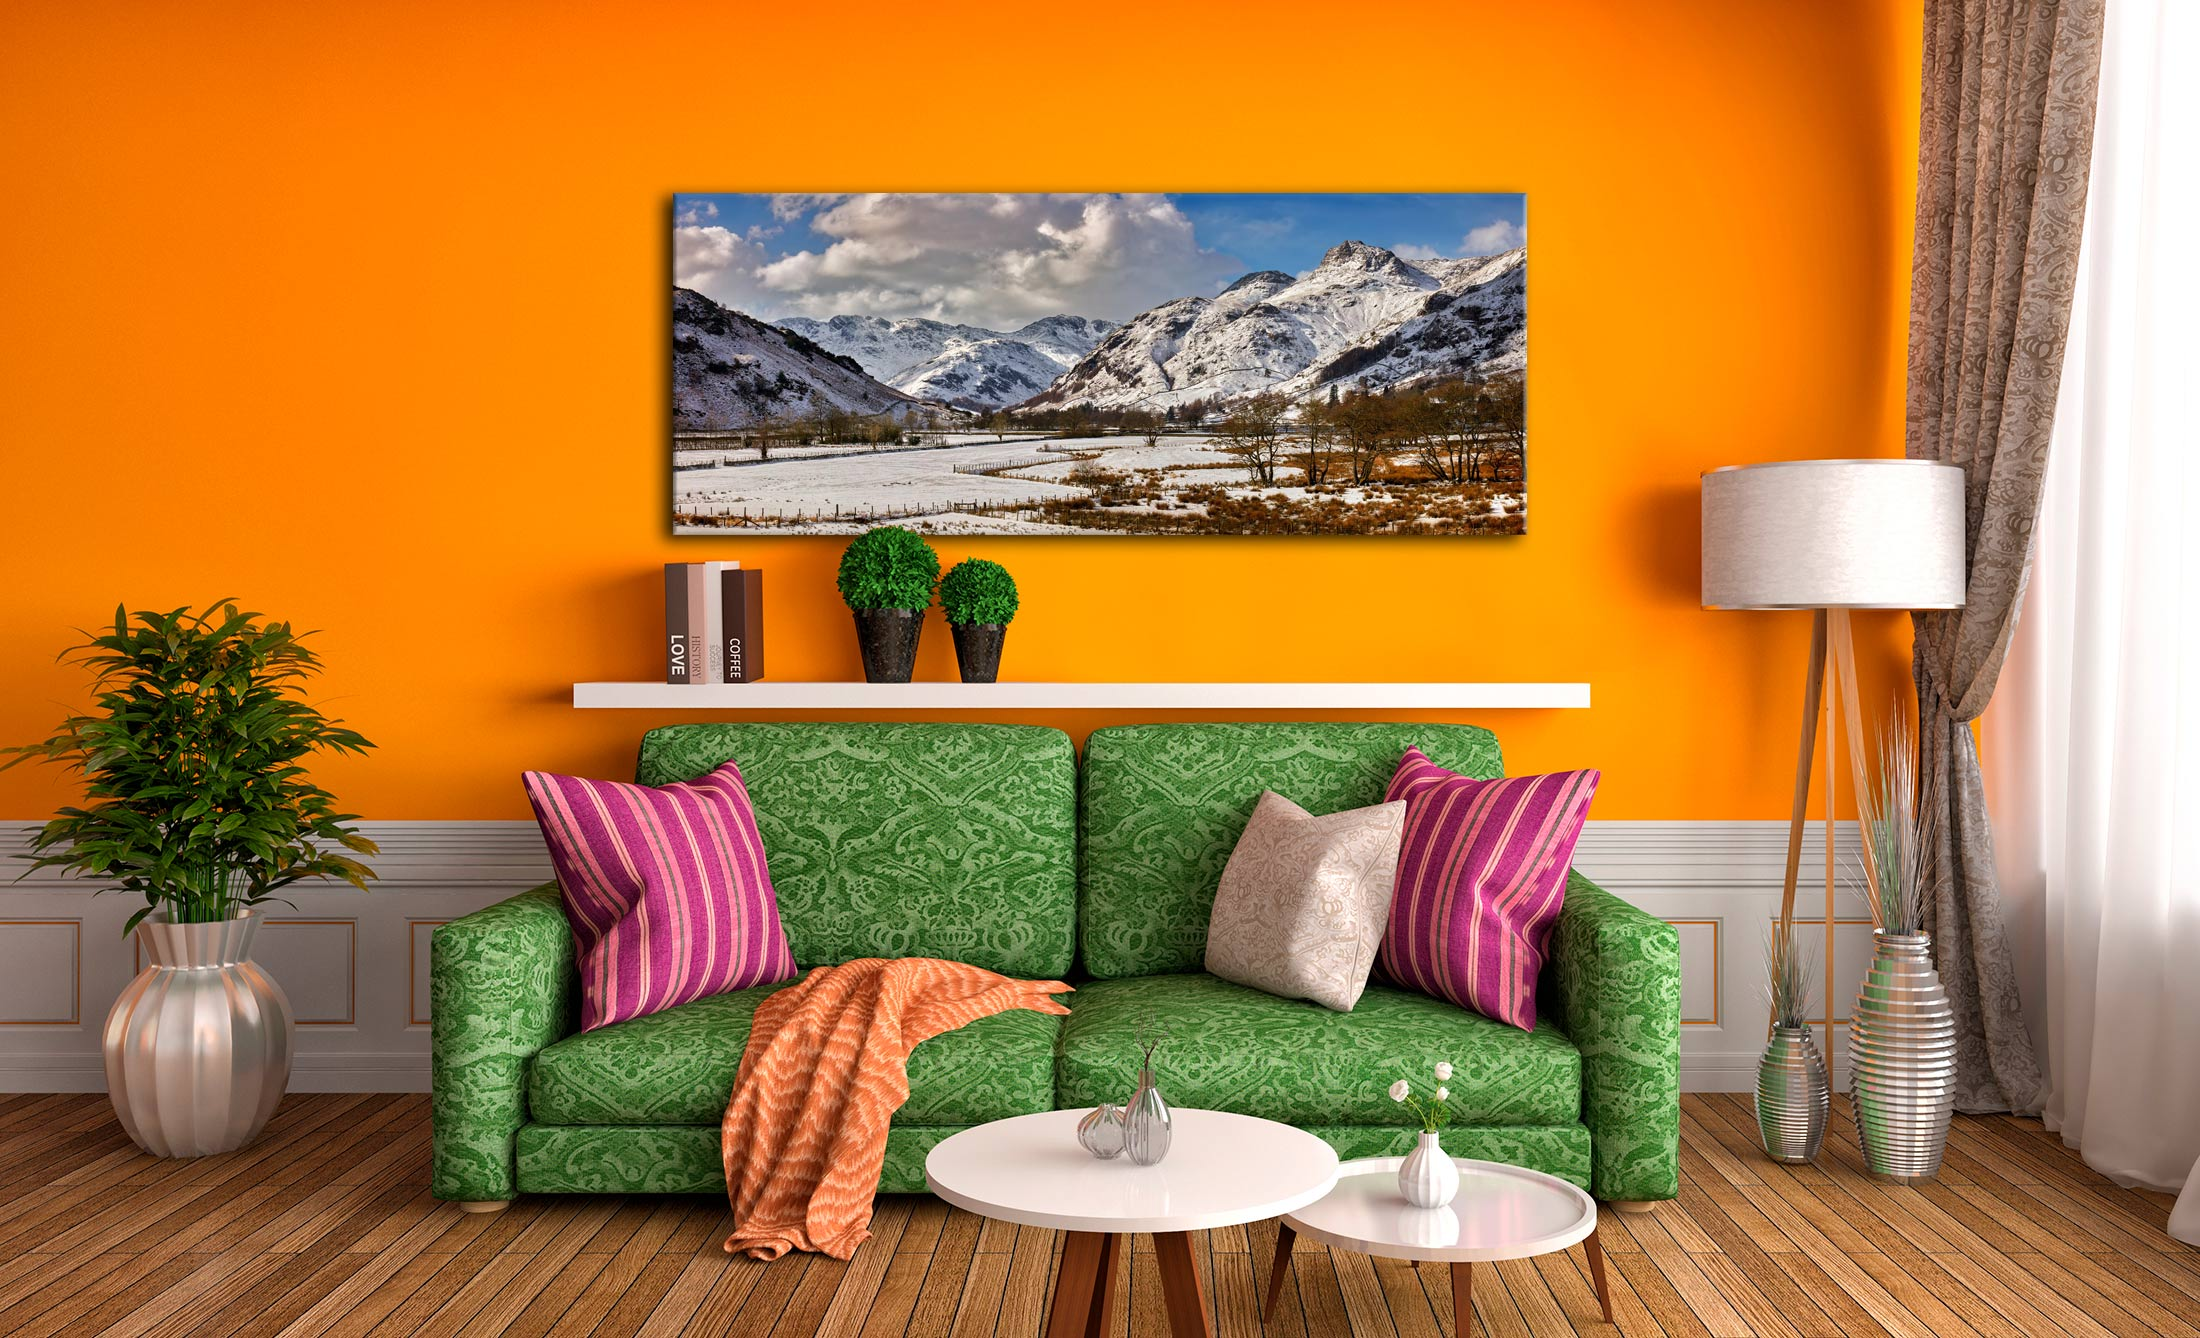 The mountains of the Langdale Valley under a coating of snow - Print Aluminium Backing With Acrylic Glazing on Wall